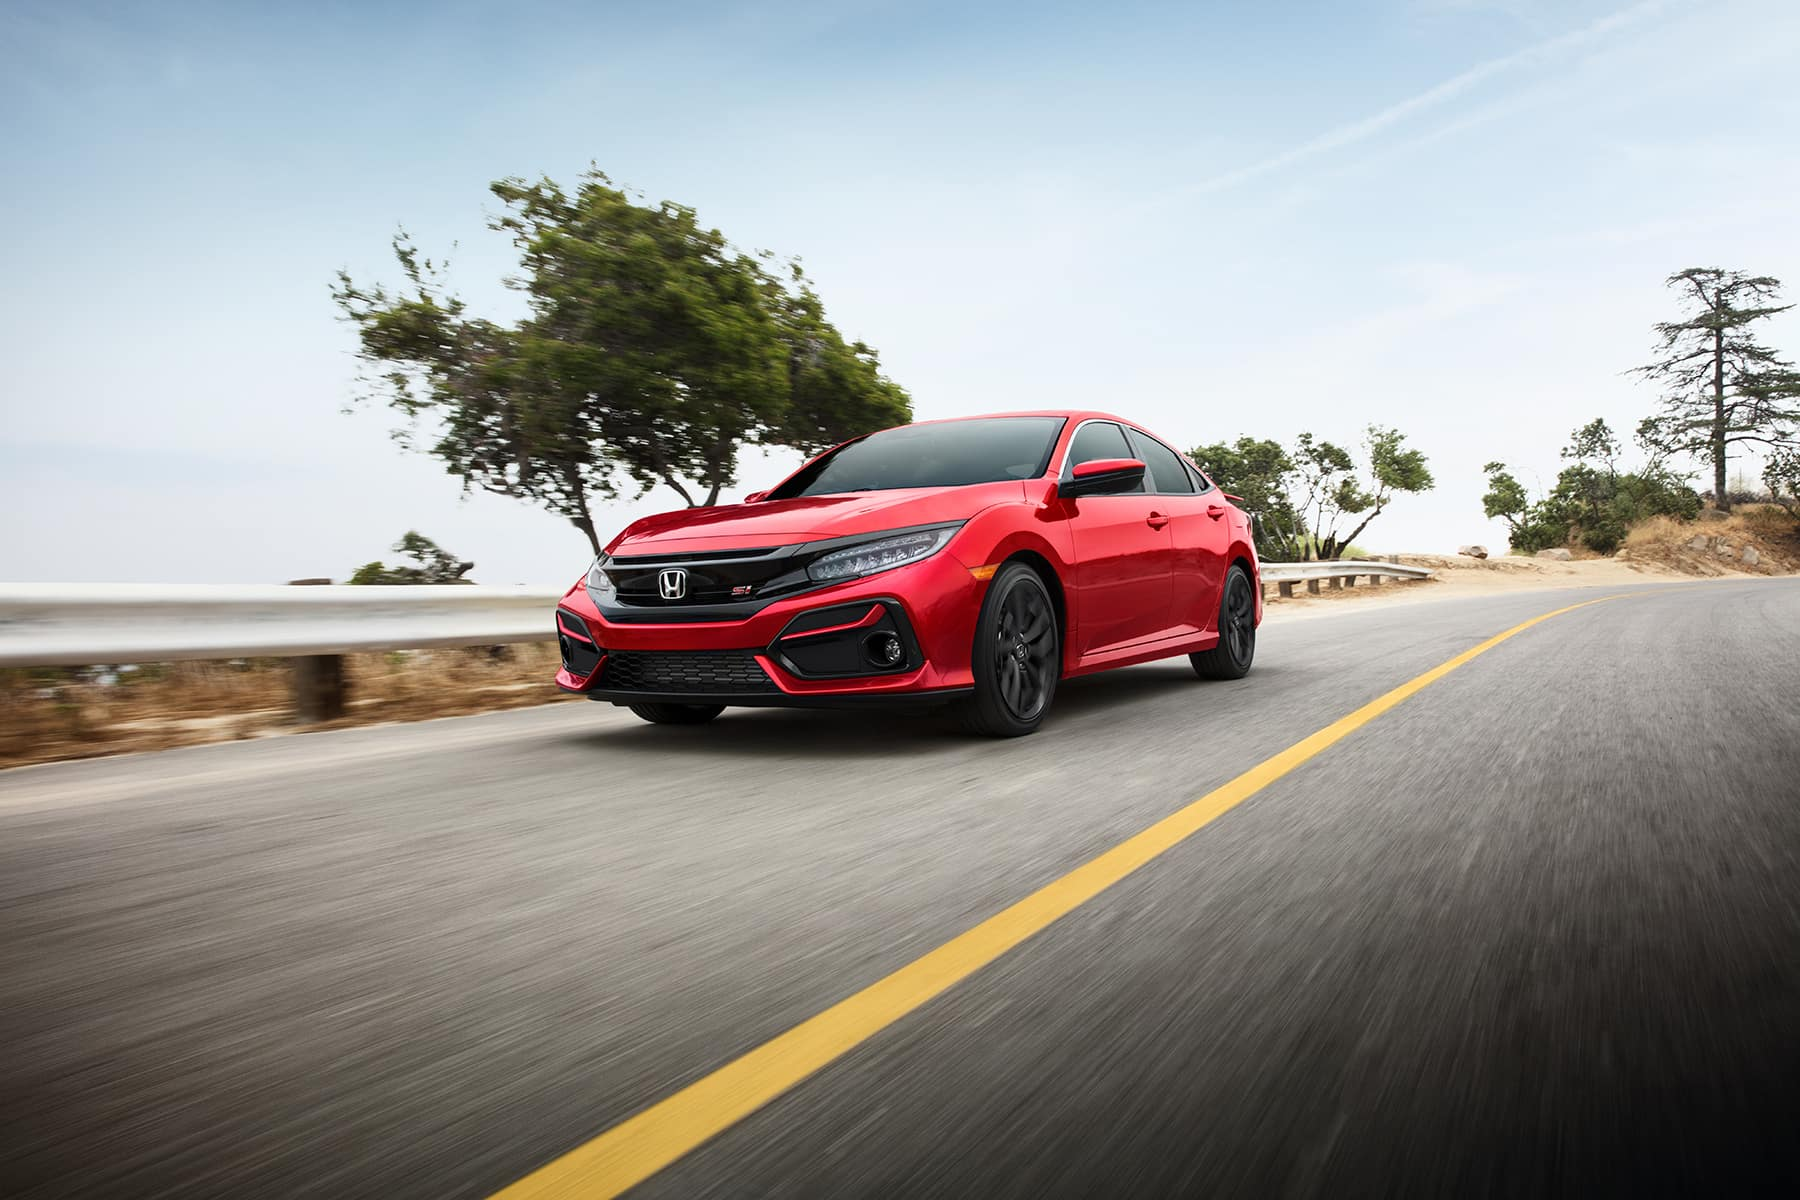 What you can get to personalize your vehicle at Boch Honda in Norwood | red honda civic driving on road